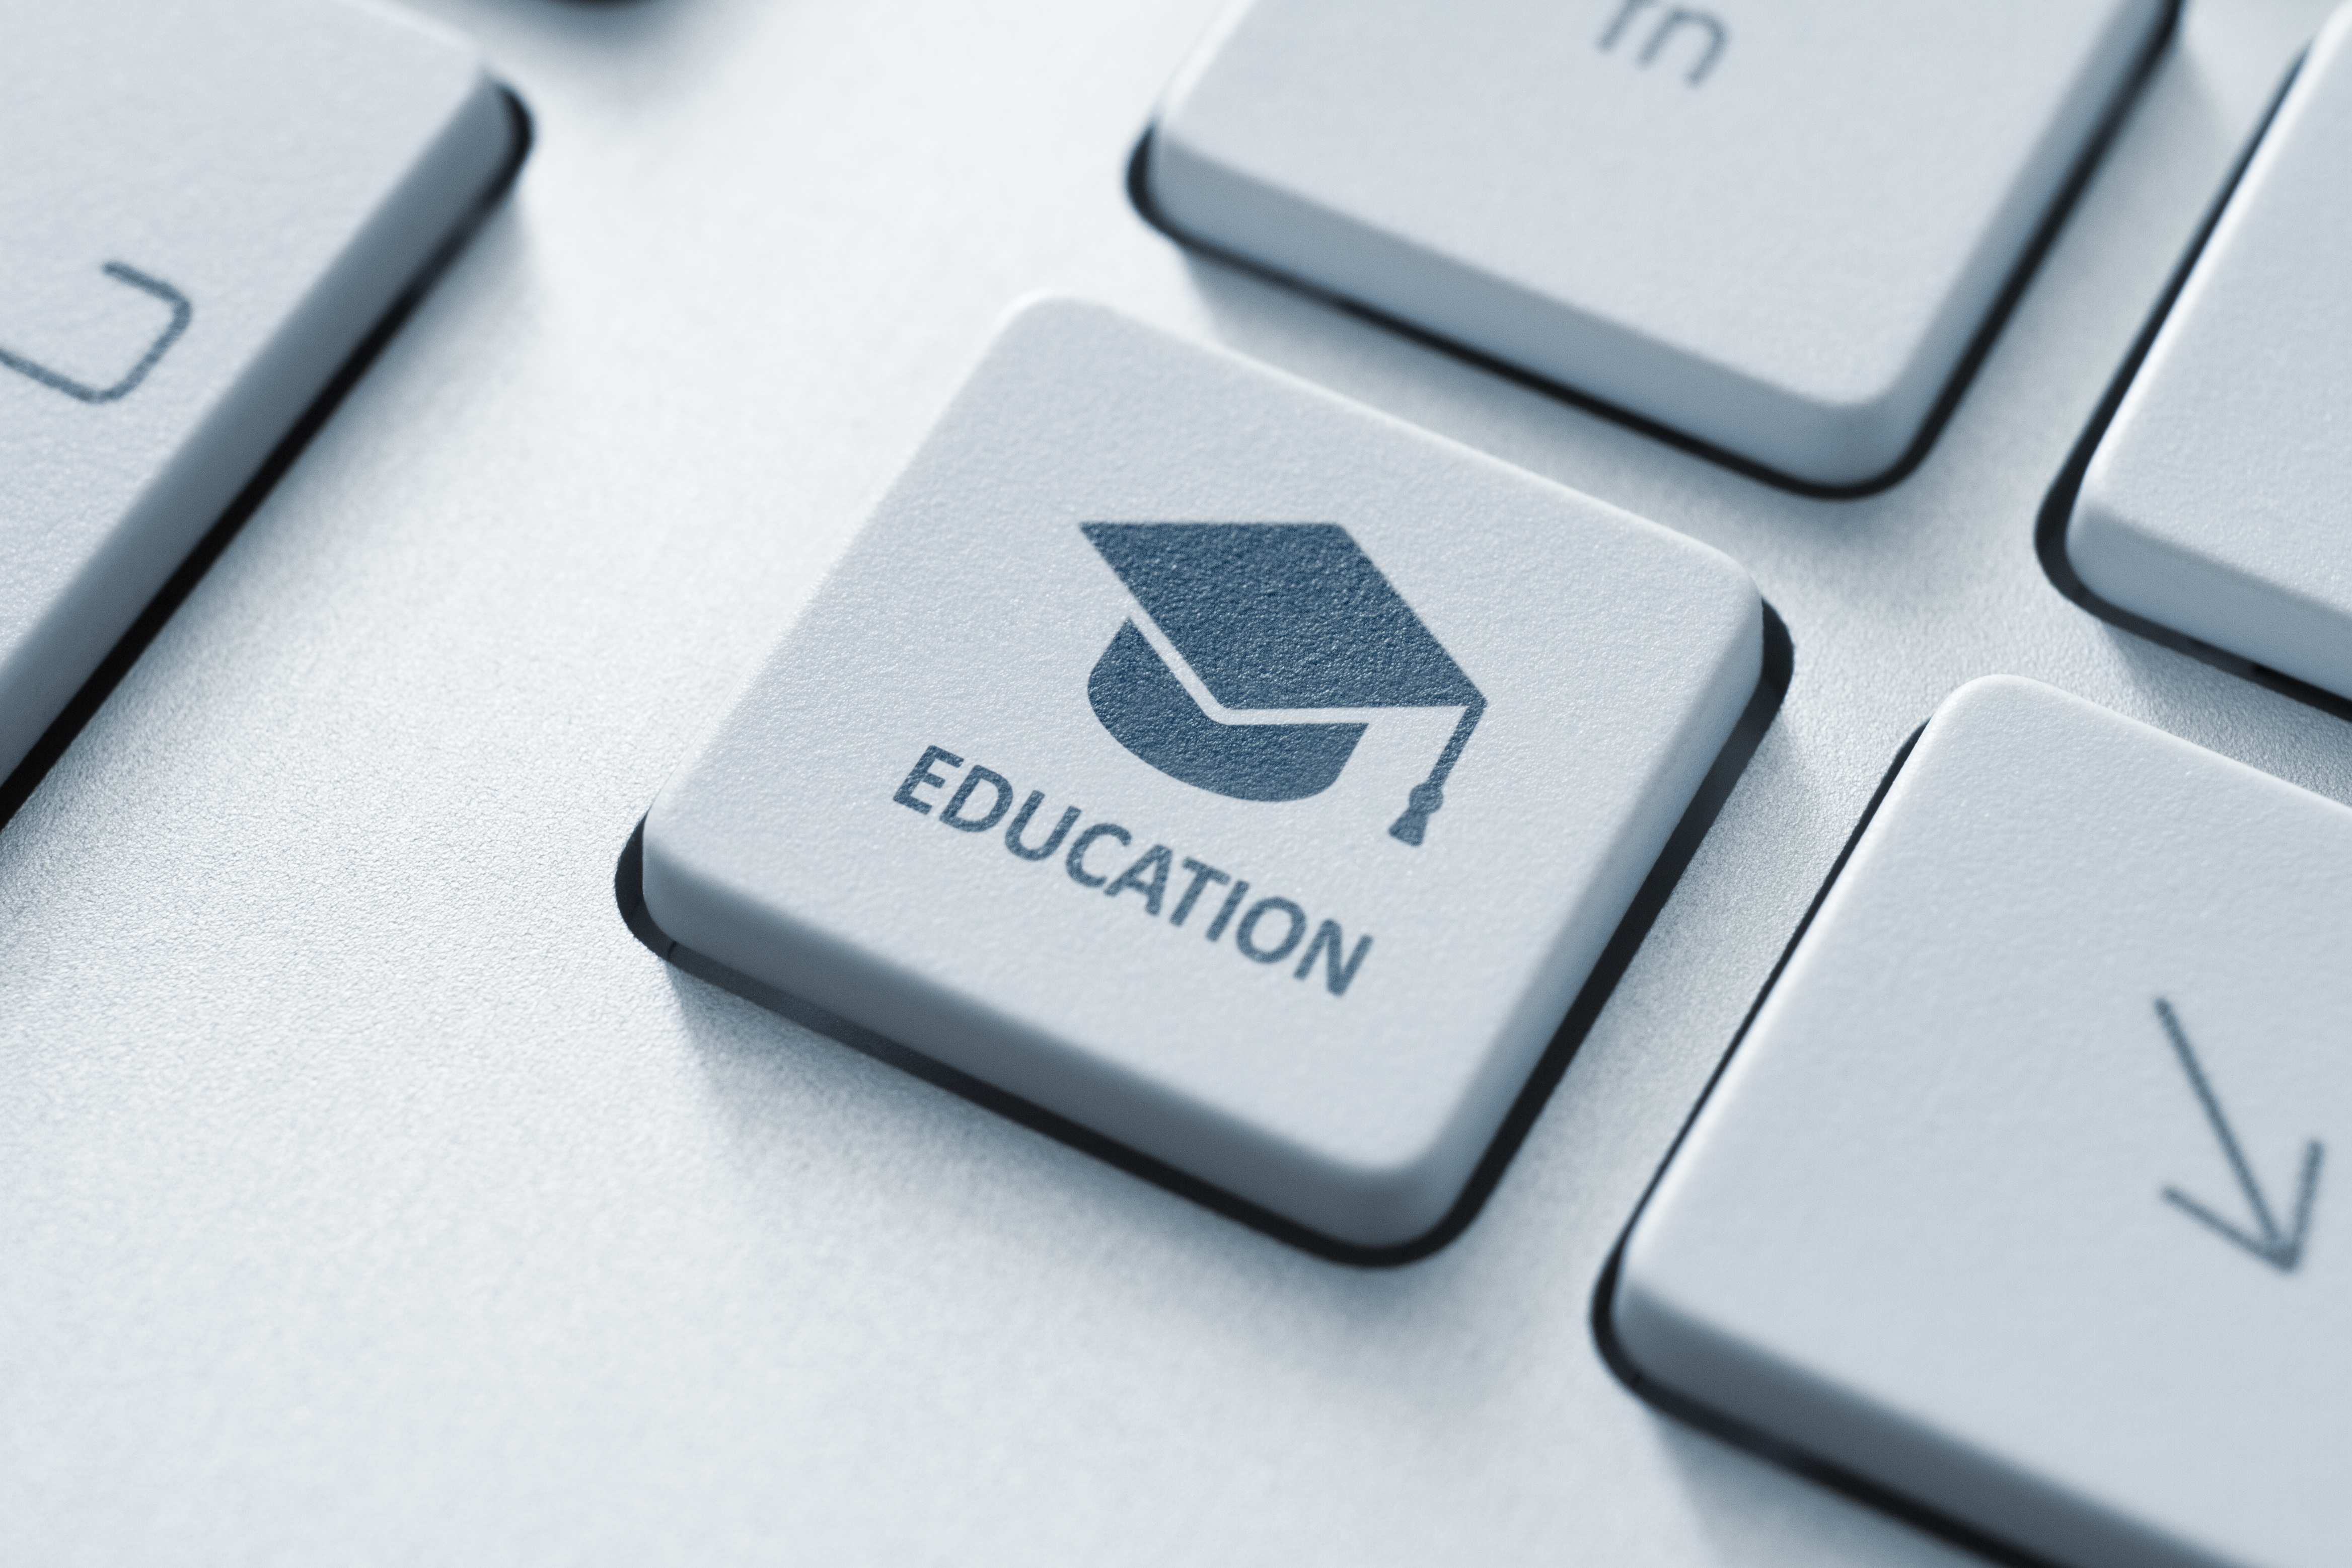 Button with graduation cap icon on a modern computer keyboard.jpg Online education concept